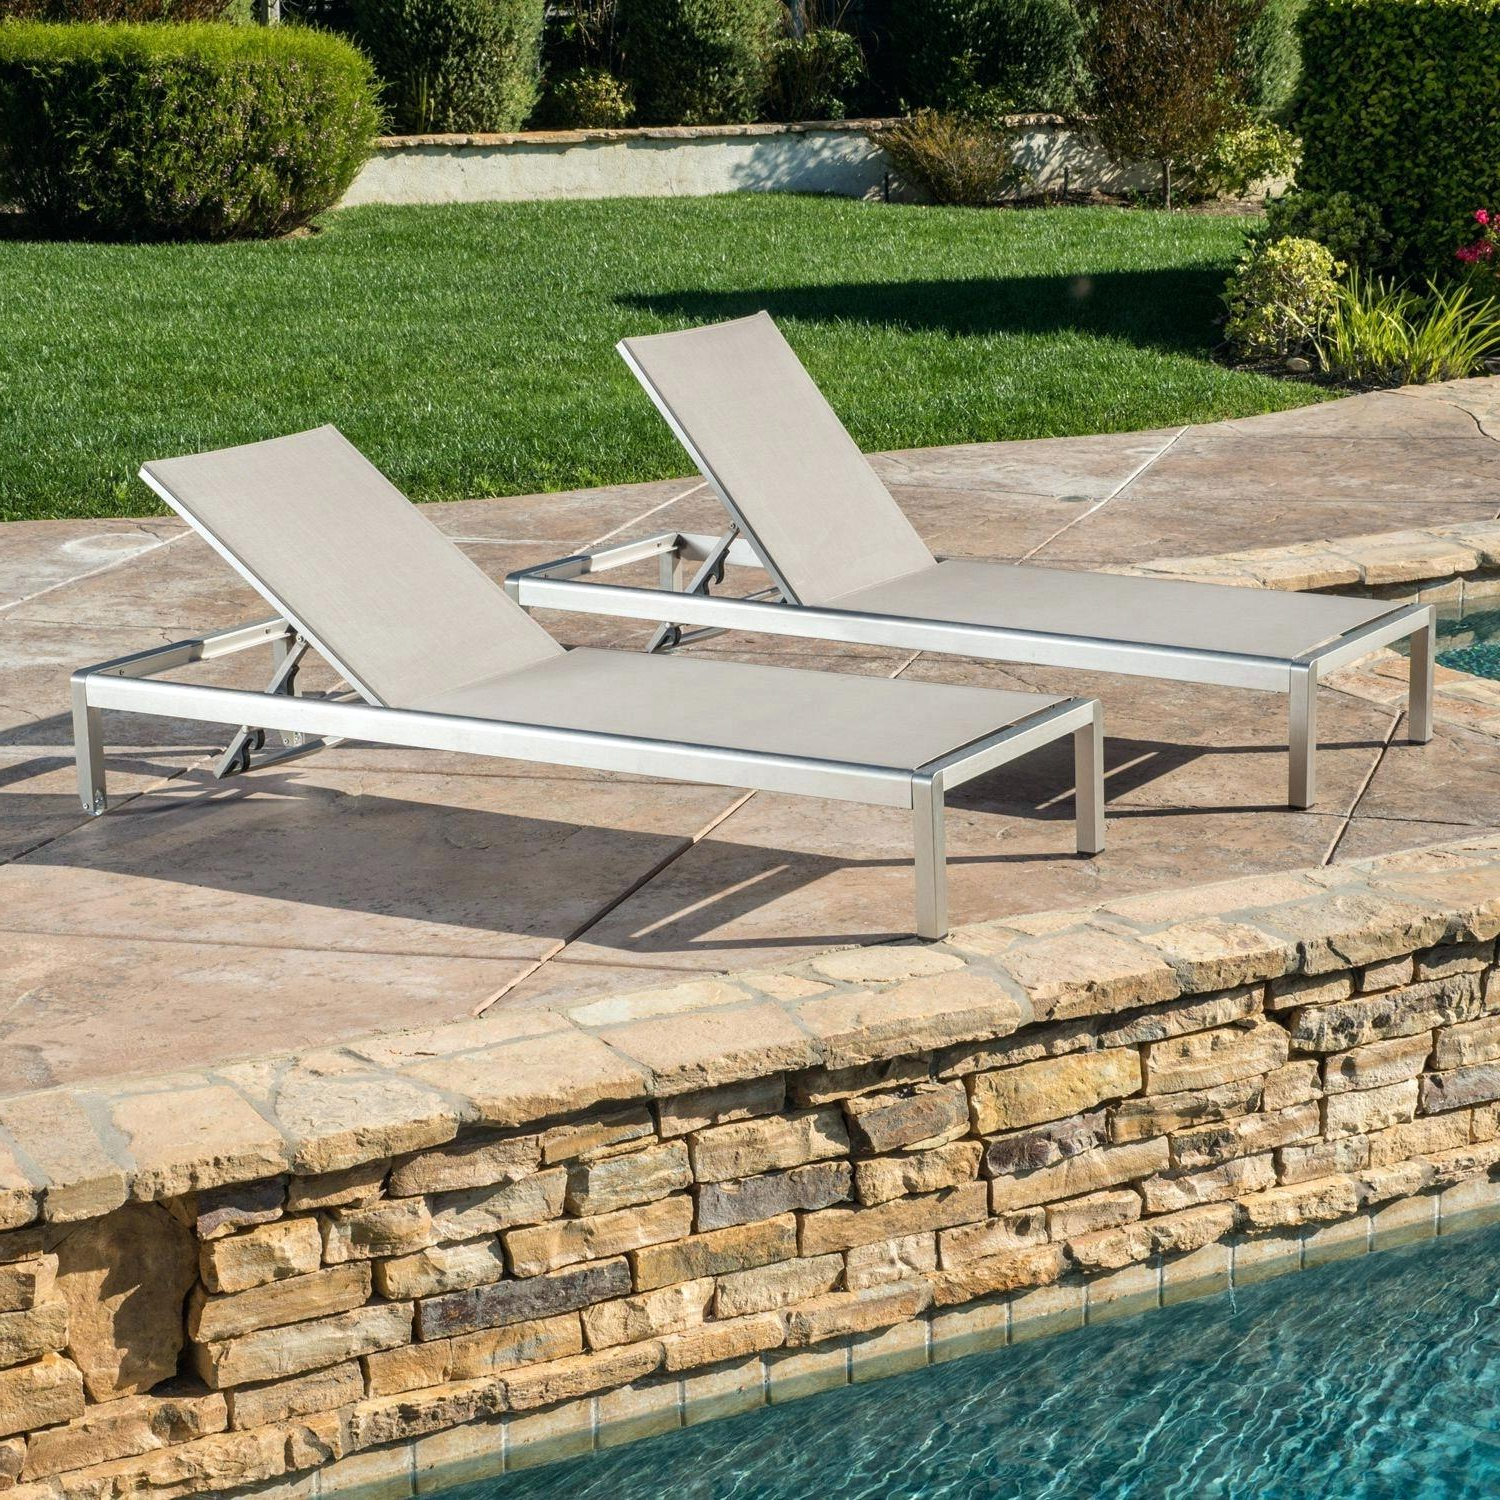 Mesh Lounge Chair Hot Outdoor Chaise Chairs Plastic Lounger Regarding Best And Newest Glimpse Outdoor Patio Mesh Chaise Lounge Chairs (View 24 of 25)